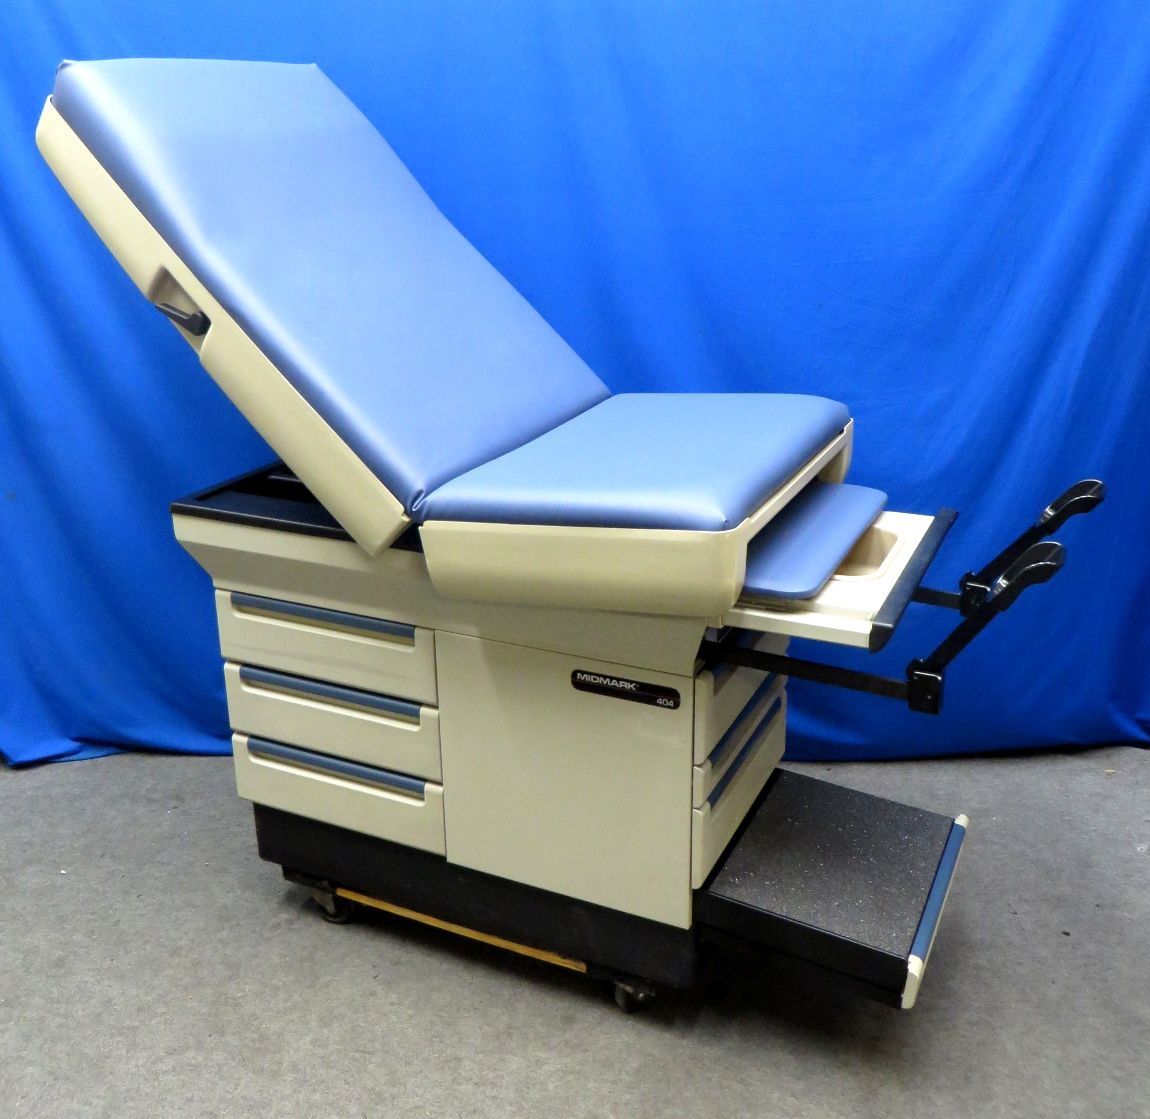 midmark dental chairs heavy duty lawn canada 404 exam table new lake blue upholstery 90 day